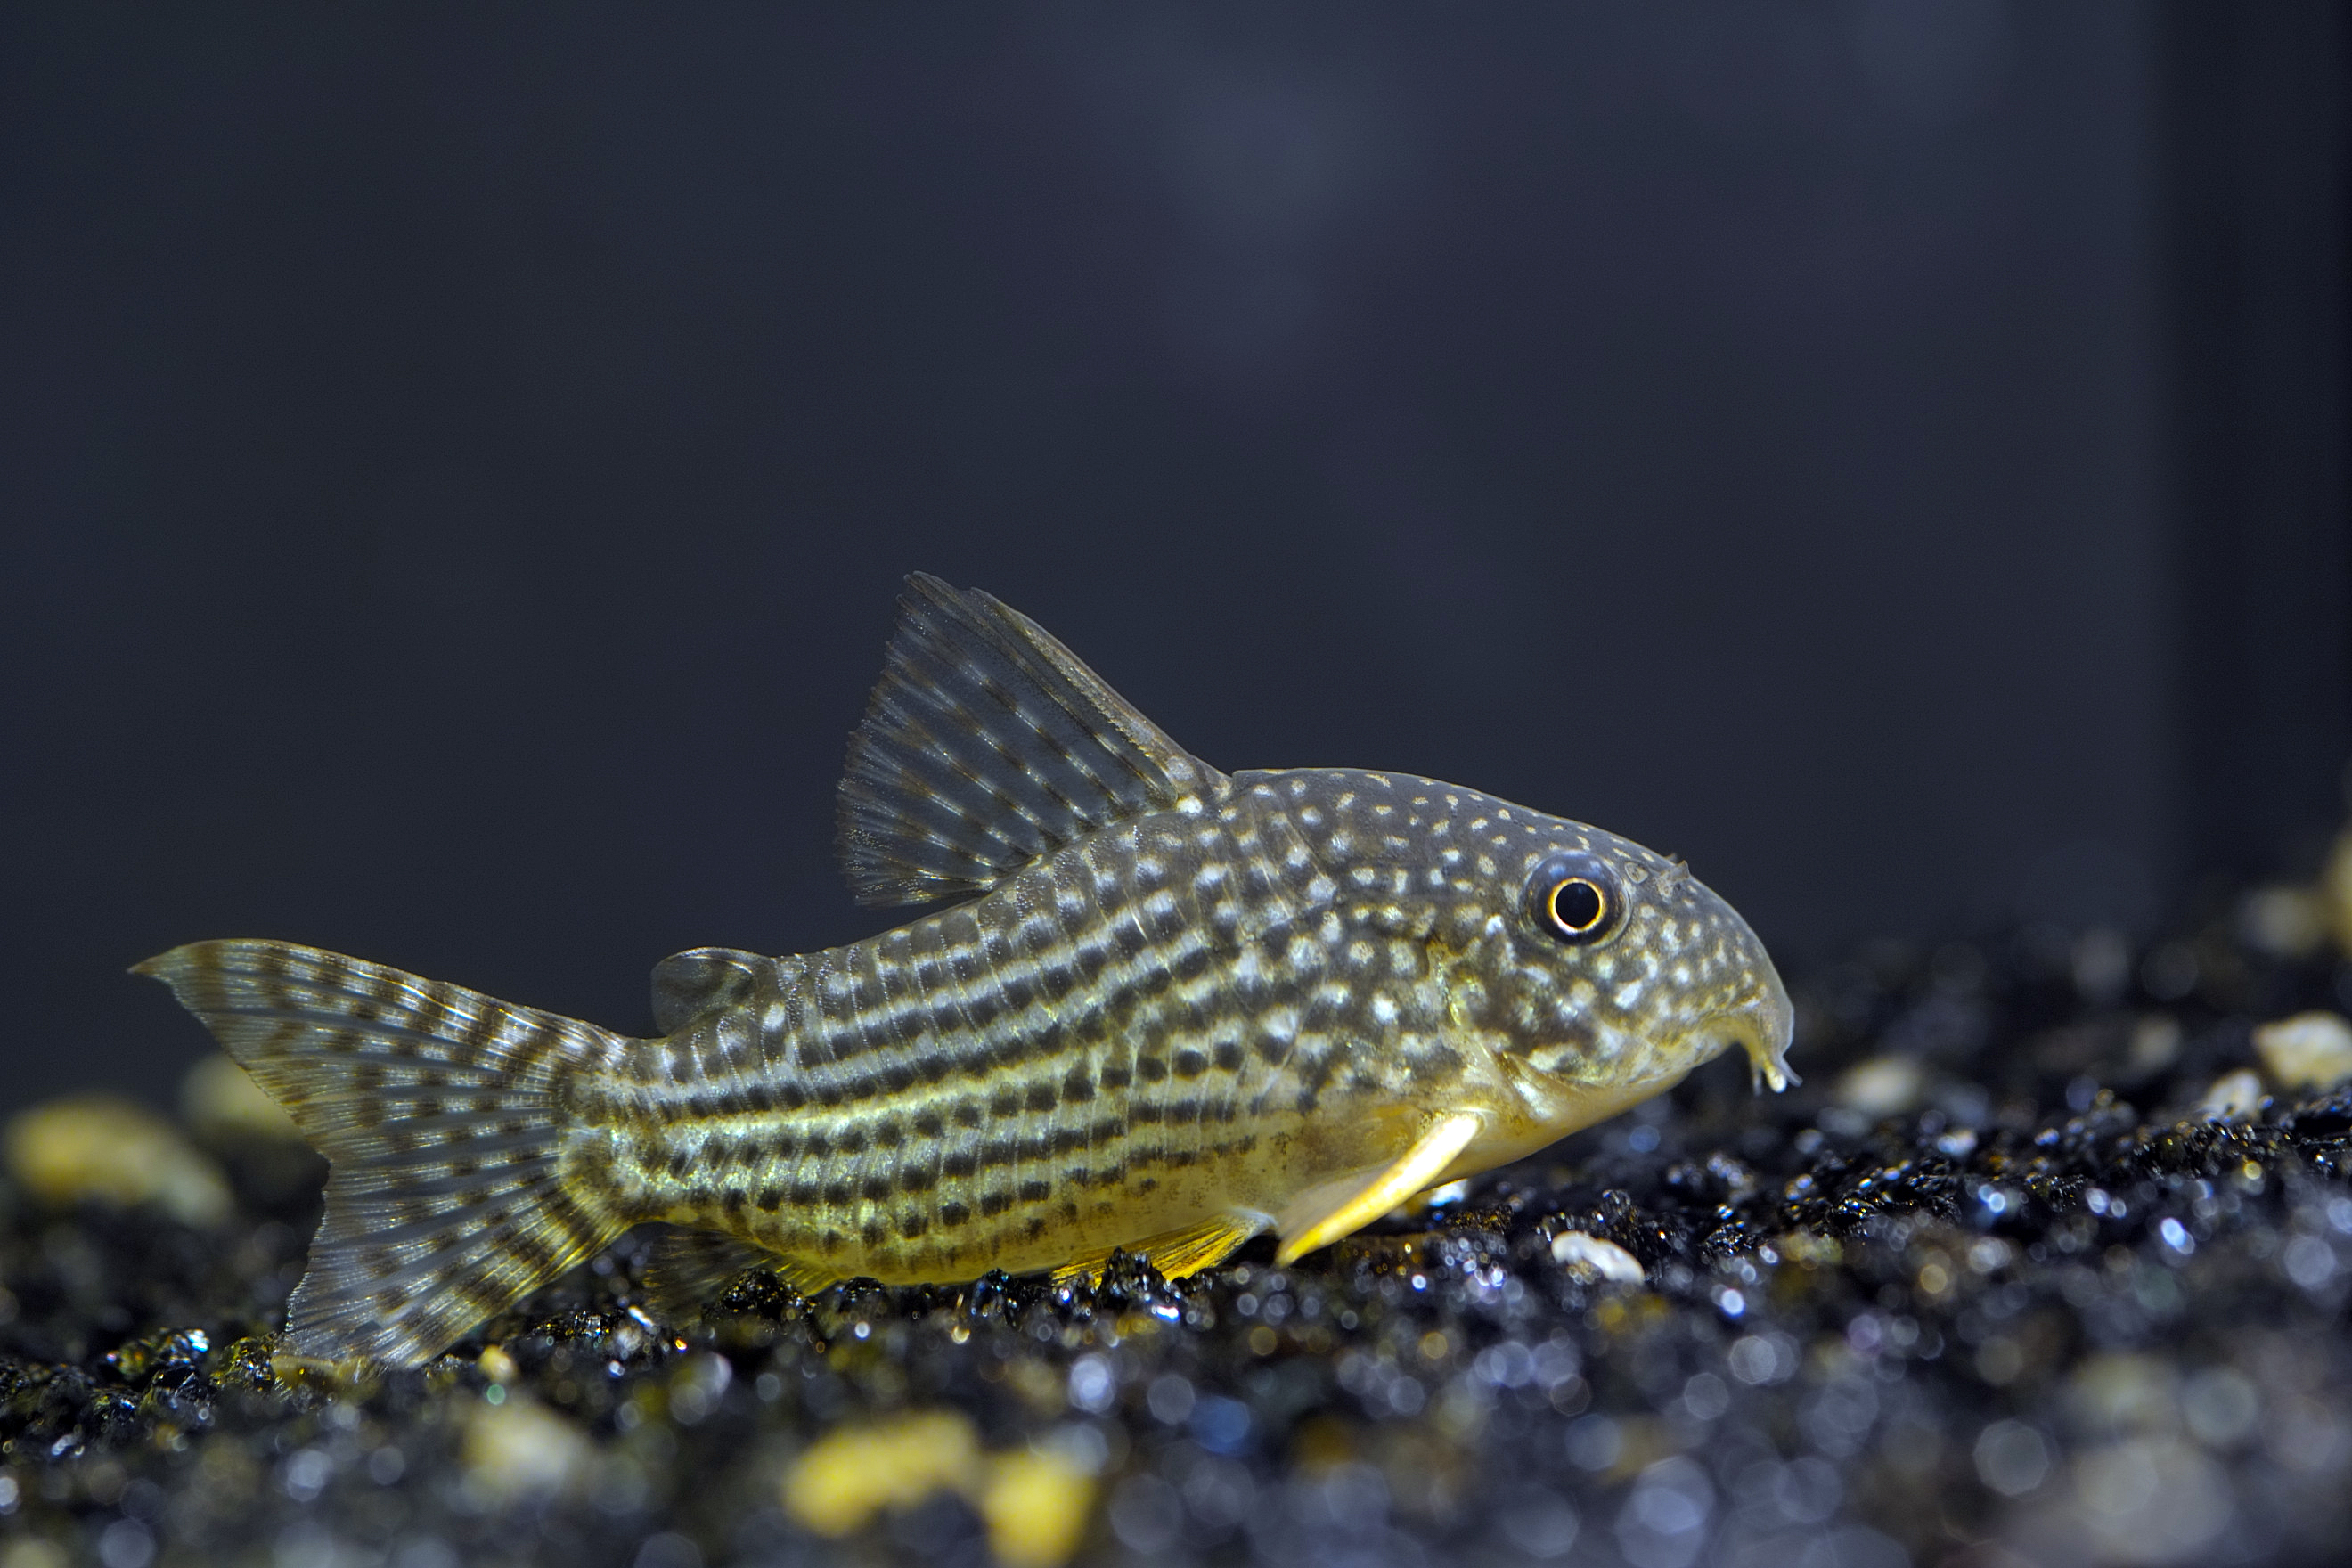 Corydoras will help to keep your goldfish tank clean